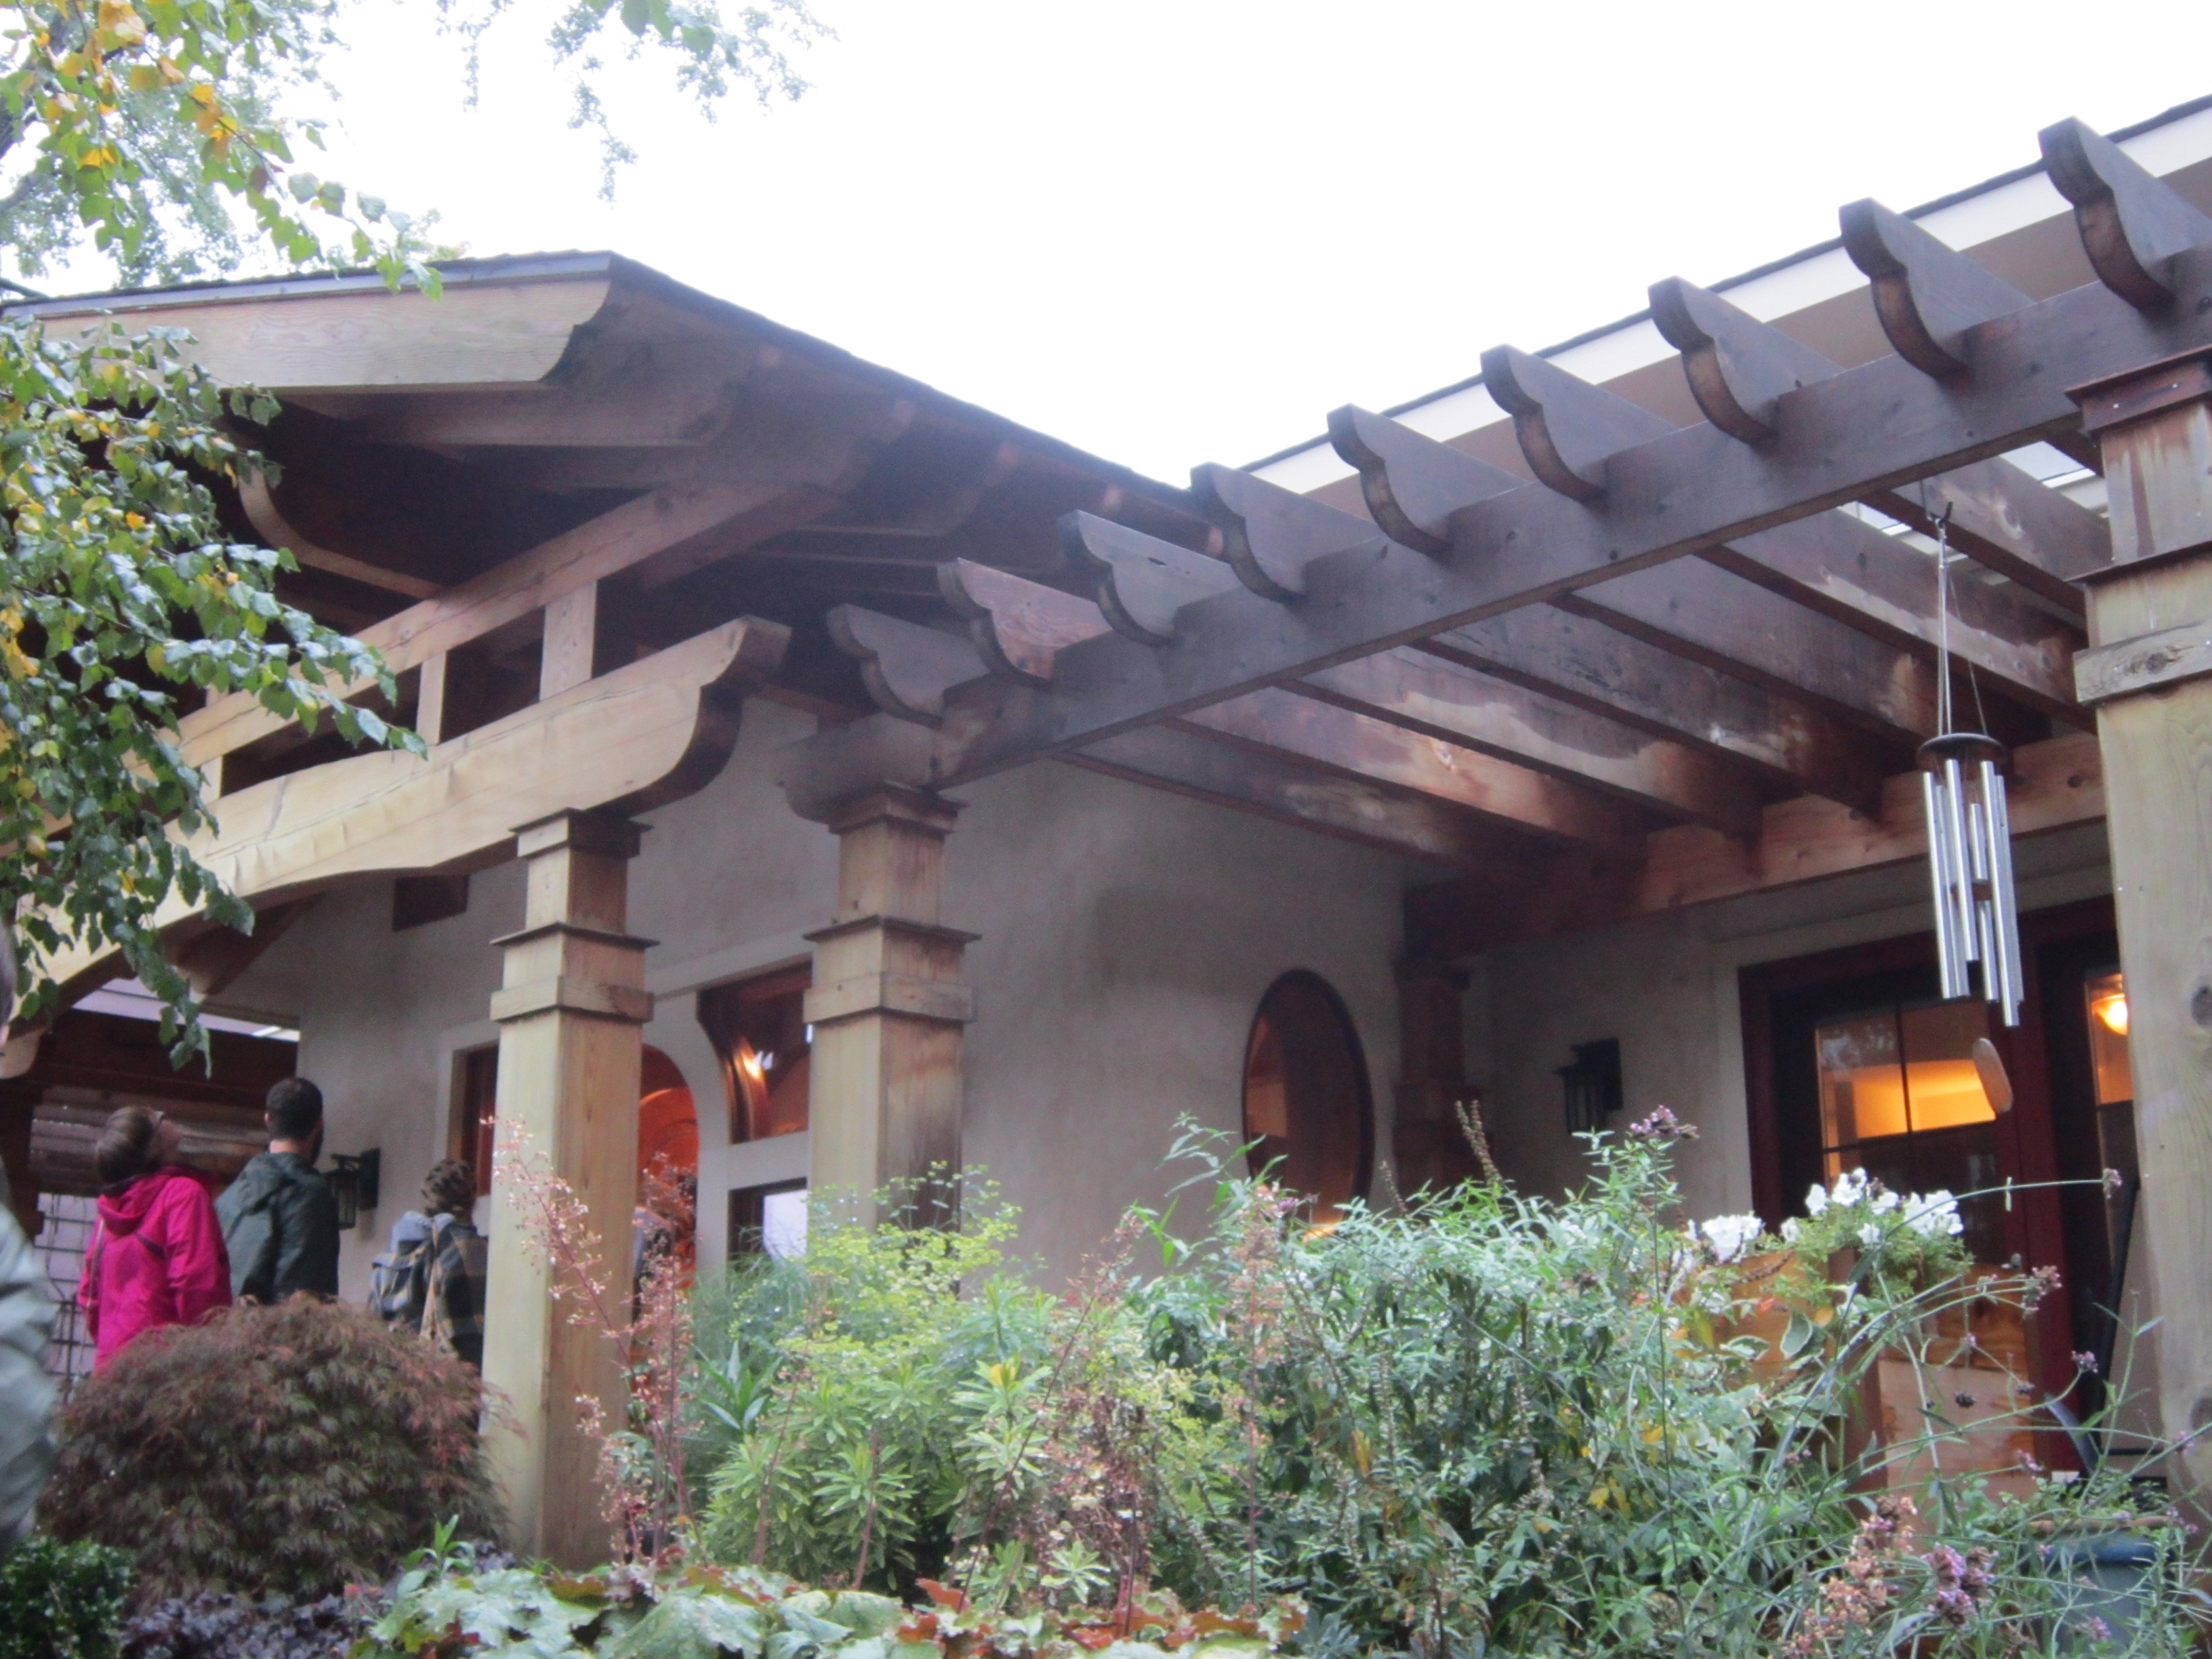 Straw bale house in the city these light footsteps - Straw bale house ...